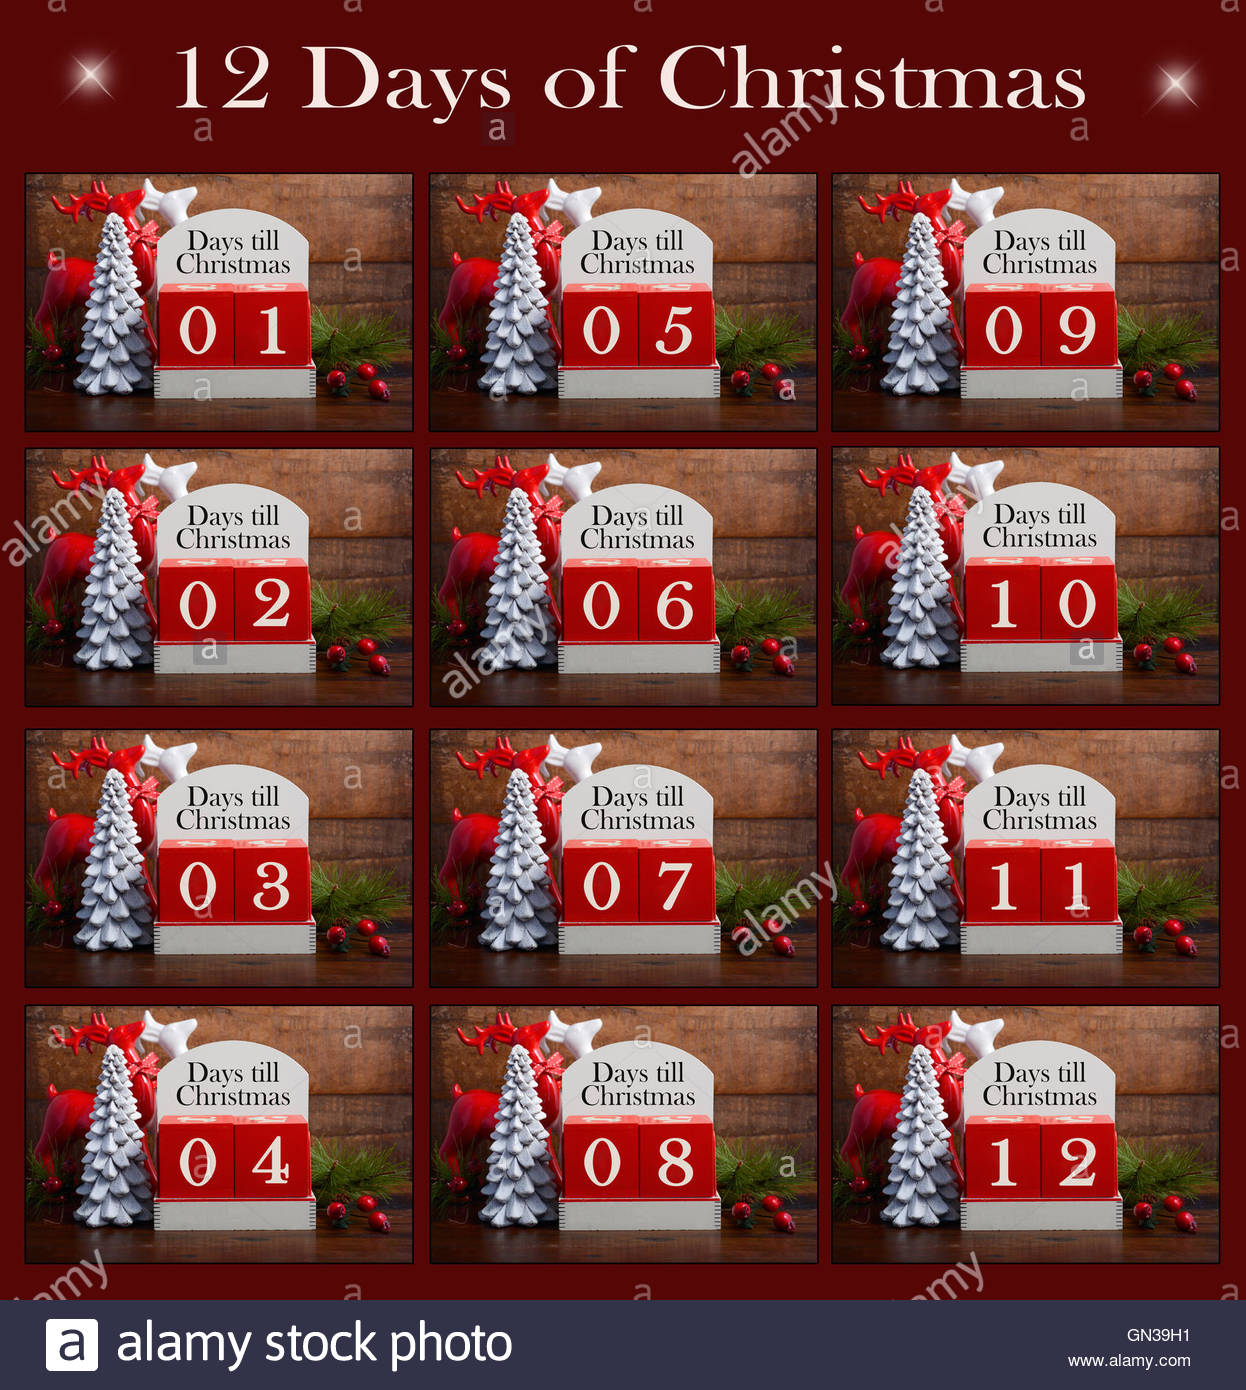 Happy Holidays Collage Of The Twelve Days Til Christmas Within 12 Days Of Christmas Calendar